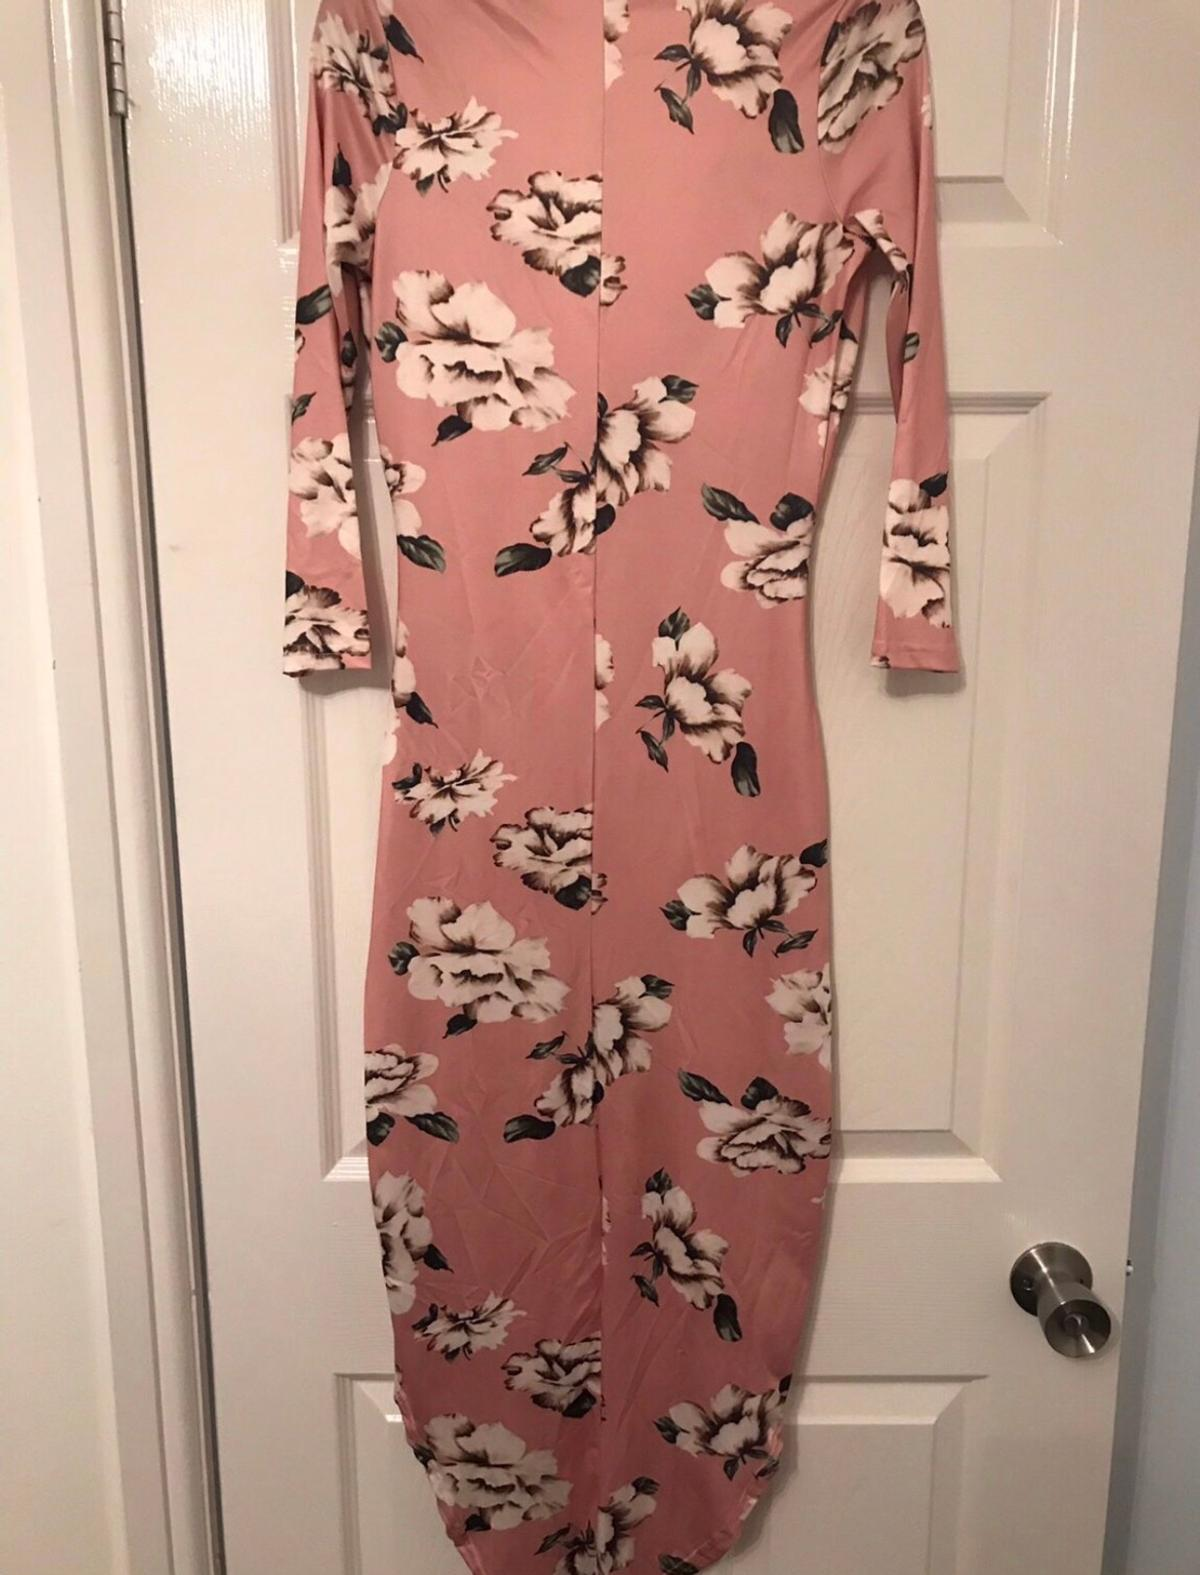 Size M Vneck, sleeves Ideal for several occasions- very elegant Never worn Comes in package  Pls message any questions  Ignore- Missguided Pretty Little Thing Asos Boohoo New Look Topshop RIver island Nasygal Misspap